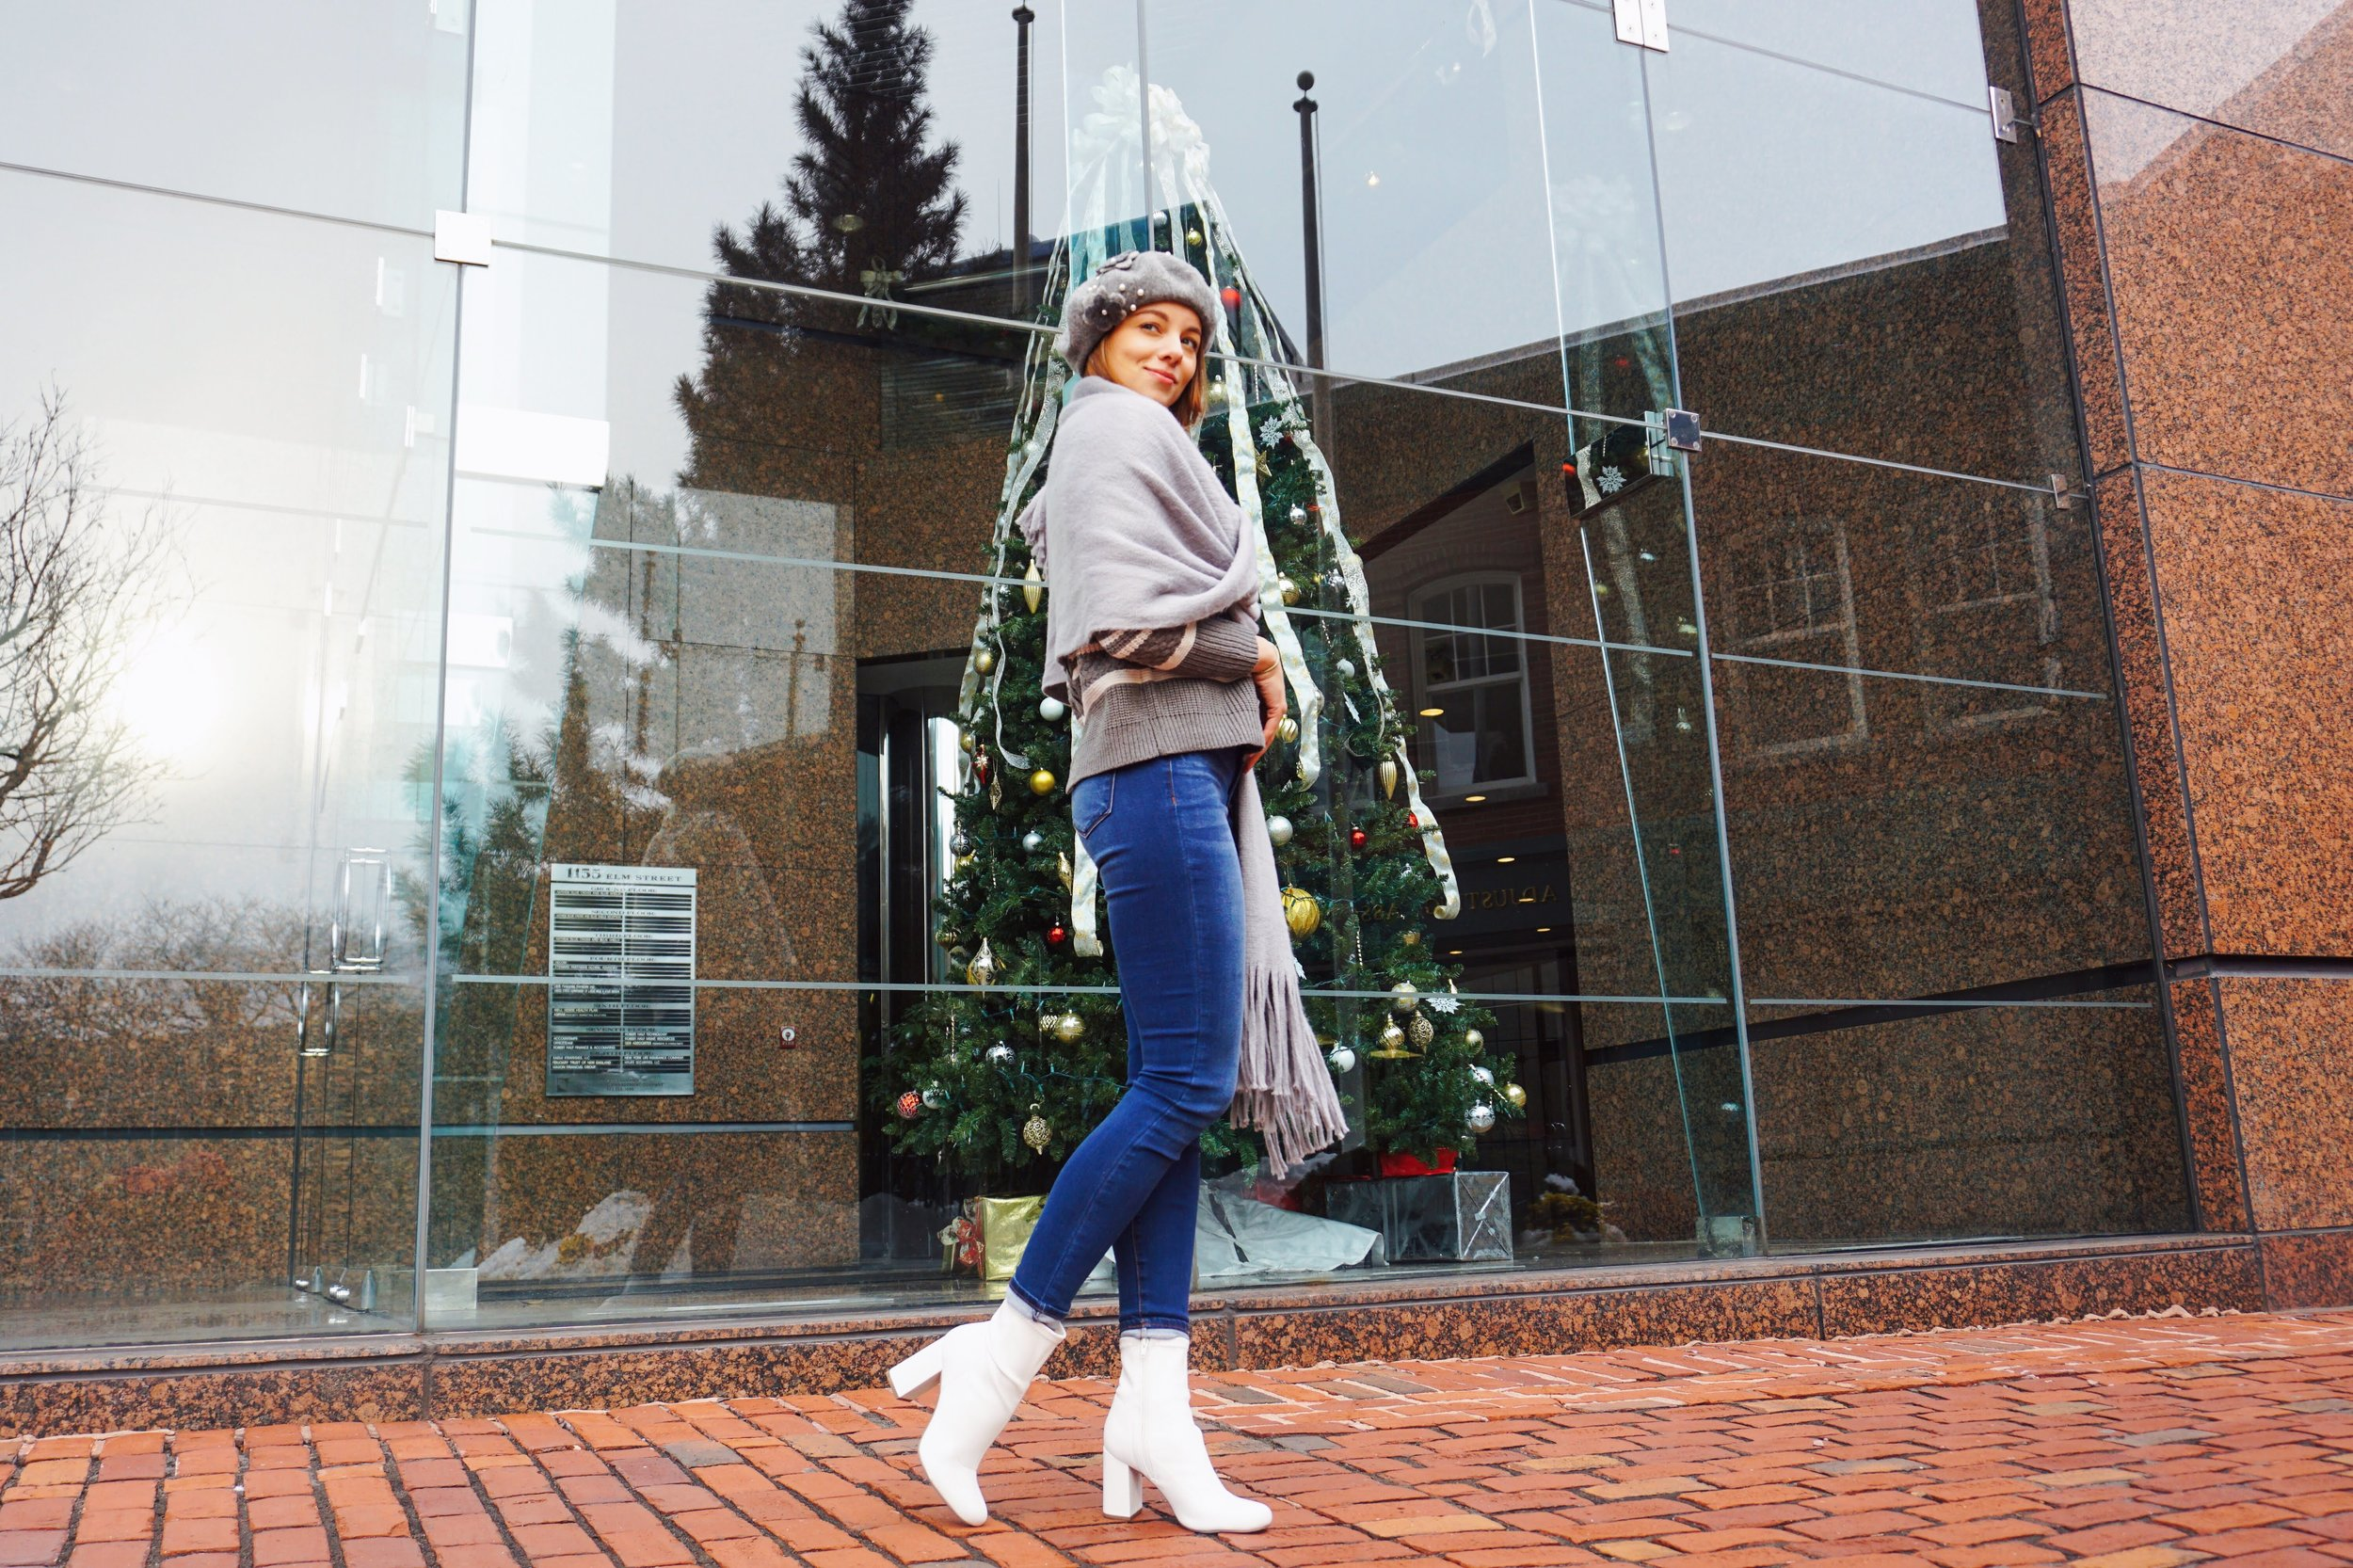 A photo of a girl posing near a Boston building, wearing a gray and white sweater, gray scarf, gray beret, blue denim jeans, and white booties.